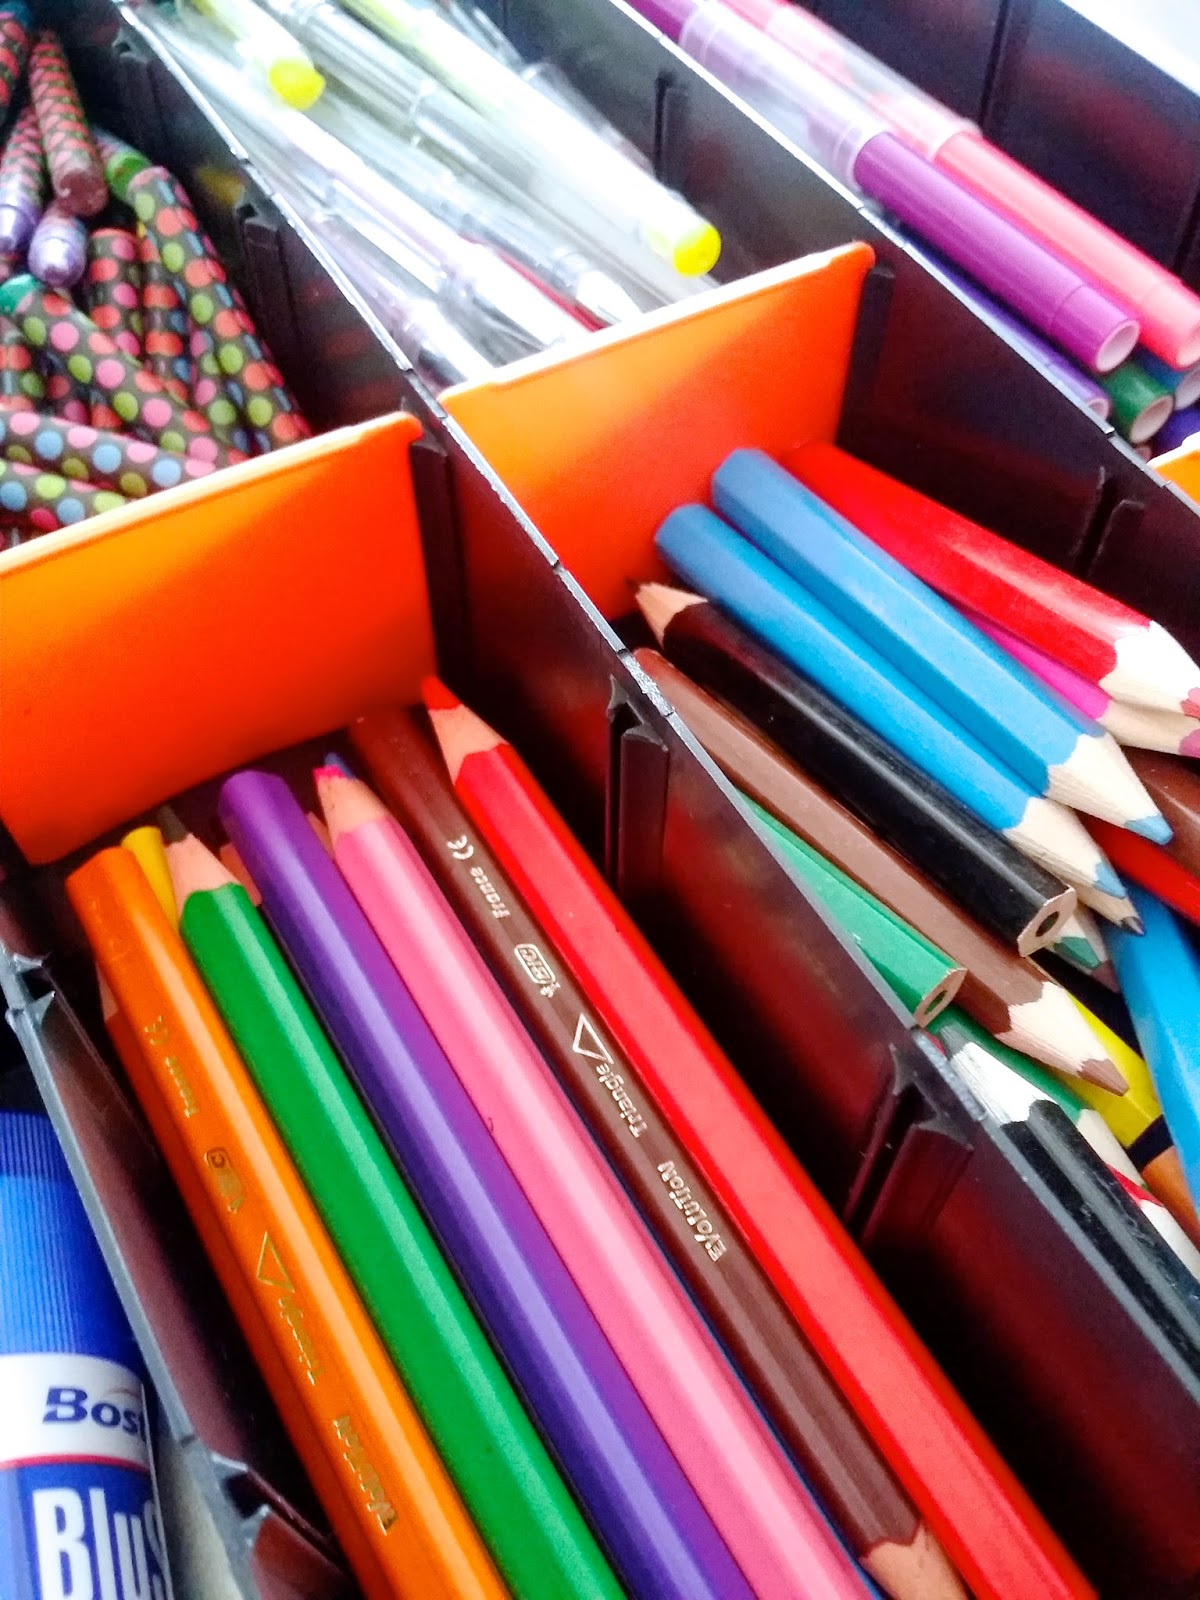 A great idea to store and organise your craft supplies is to use a tool box or a tackle box. They are significantly cheaper and often come with little inserts that allow you to customise the dimensions of each compartment. We use a small tool box to store the array of pens, pencils and crayons we have.